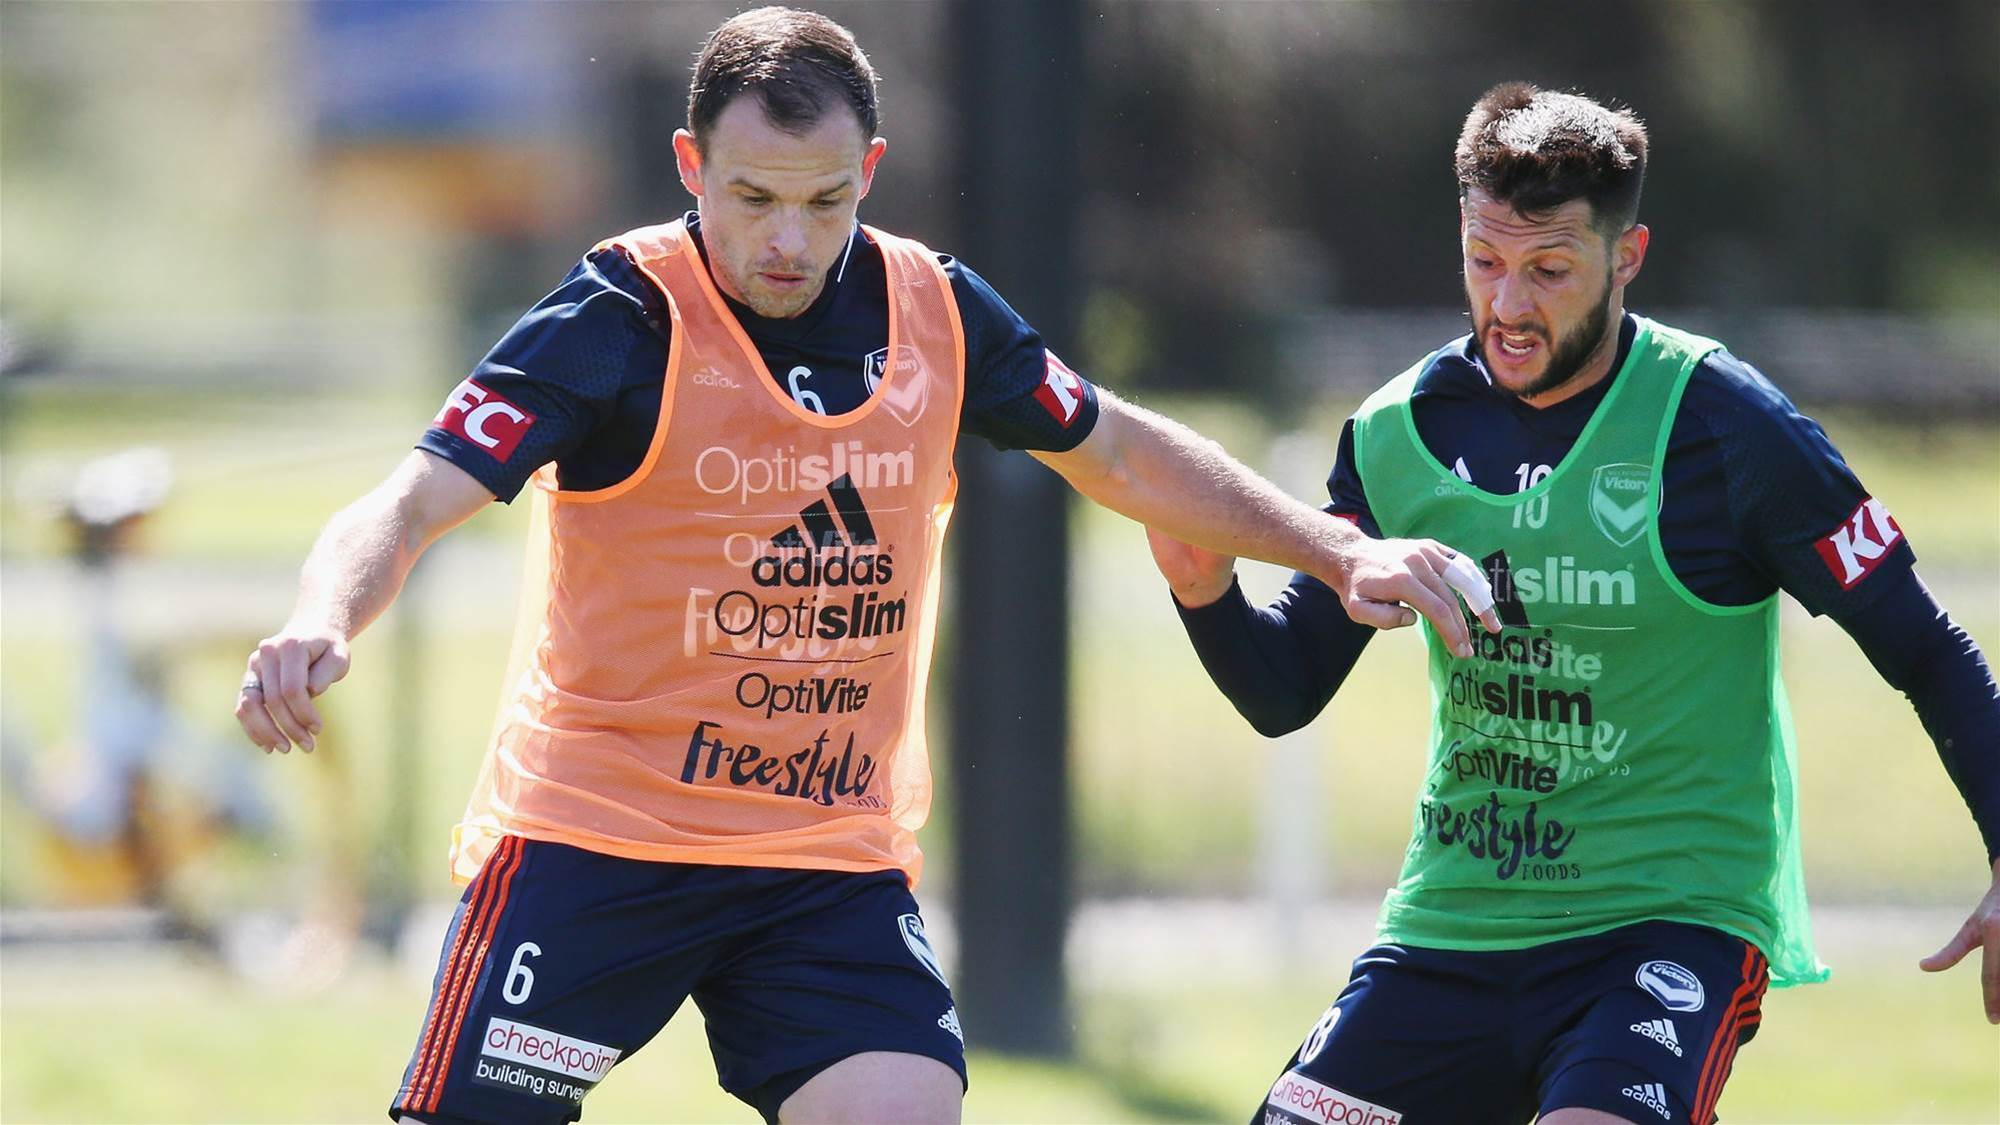 Broxham: Fielding kids is the easy way out